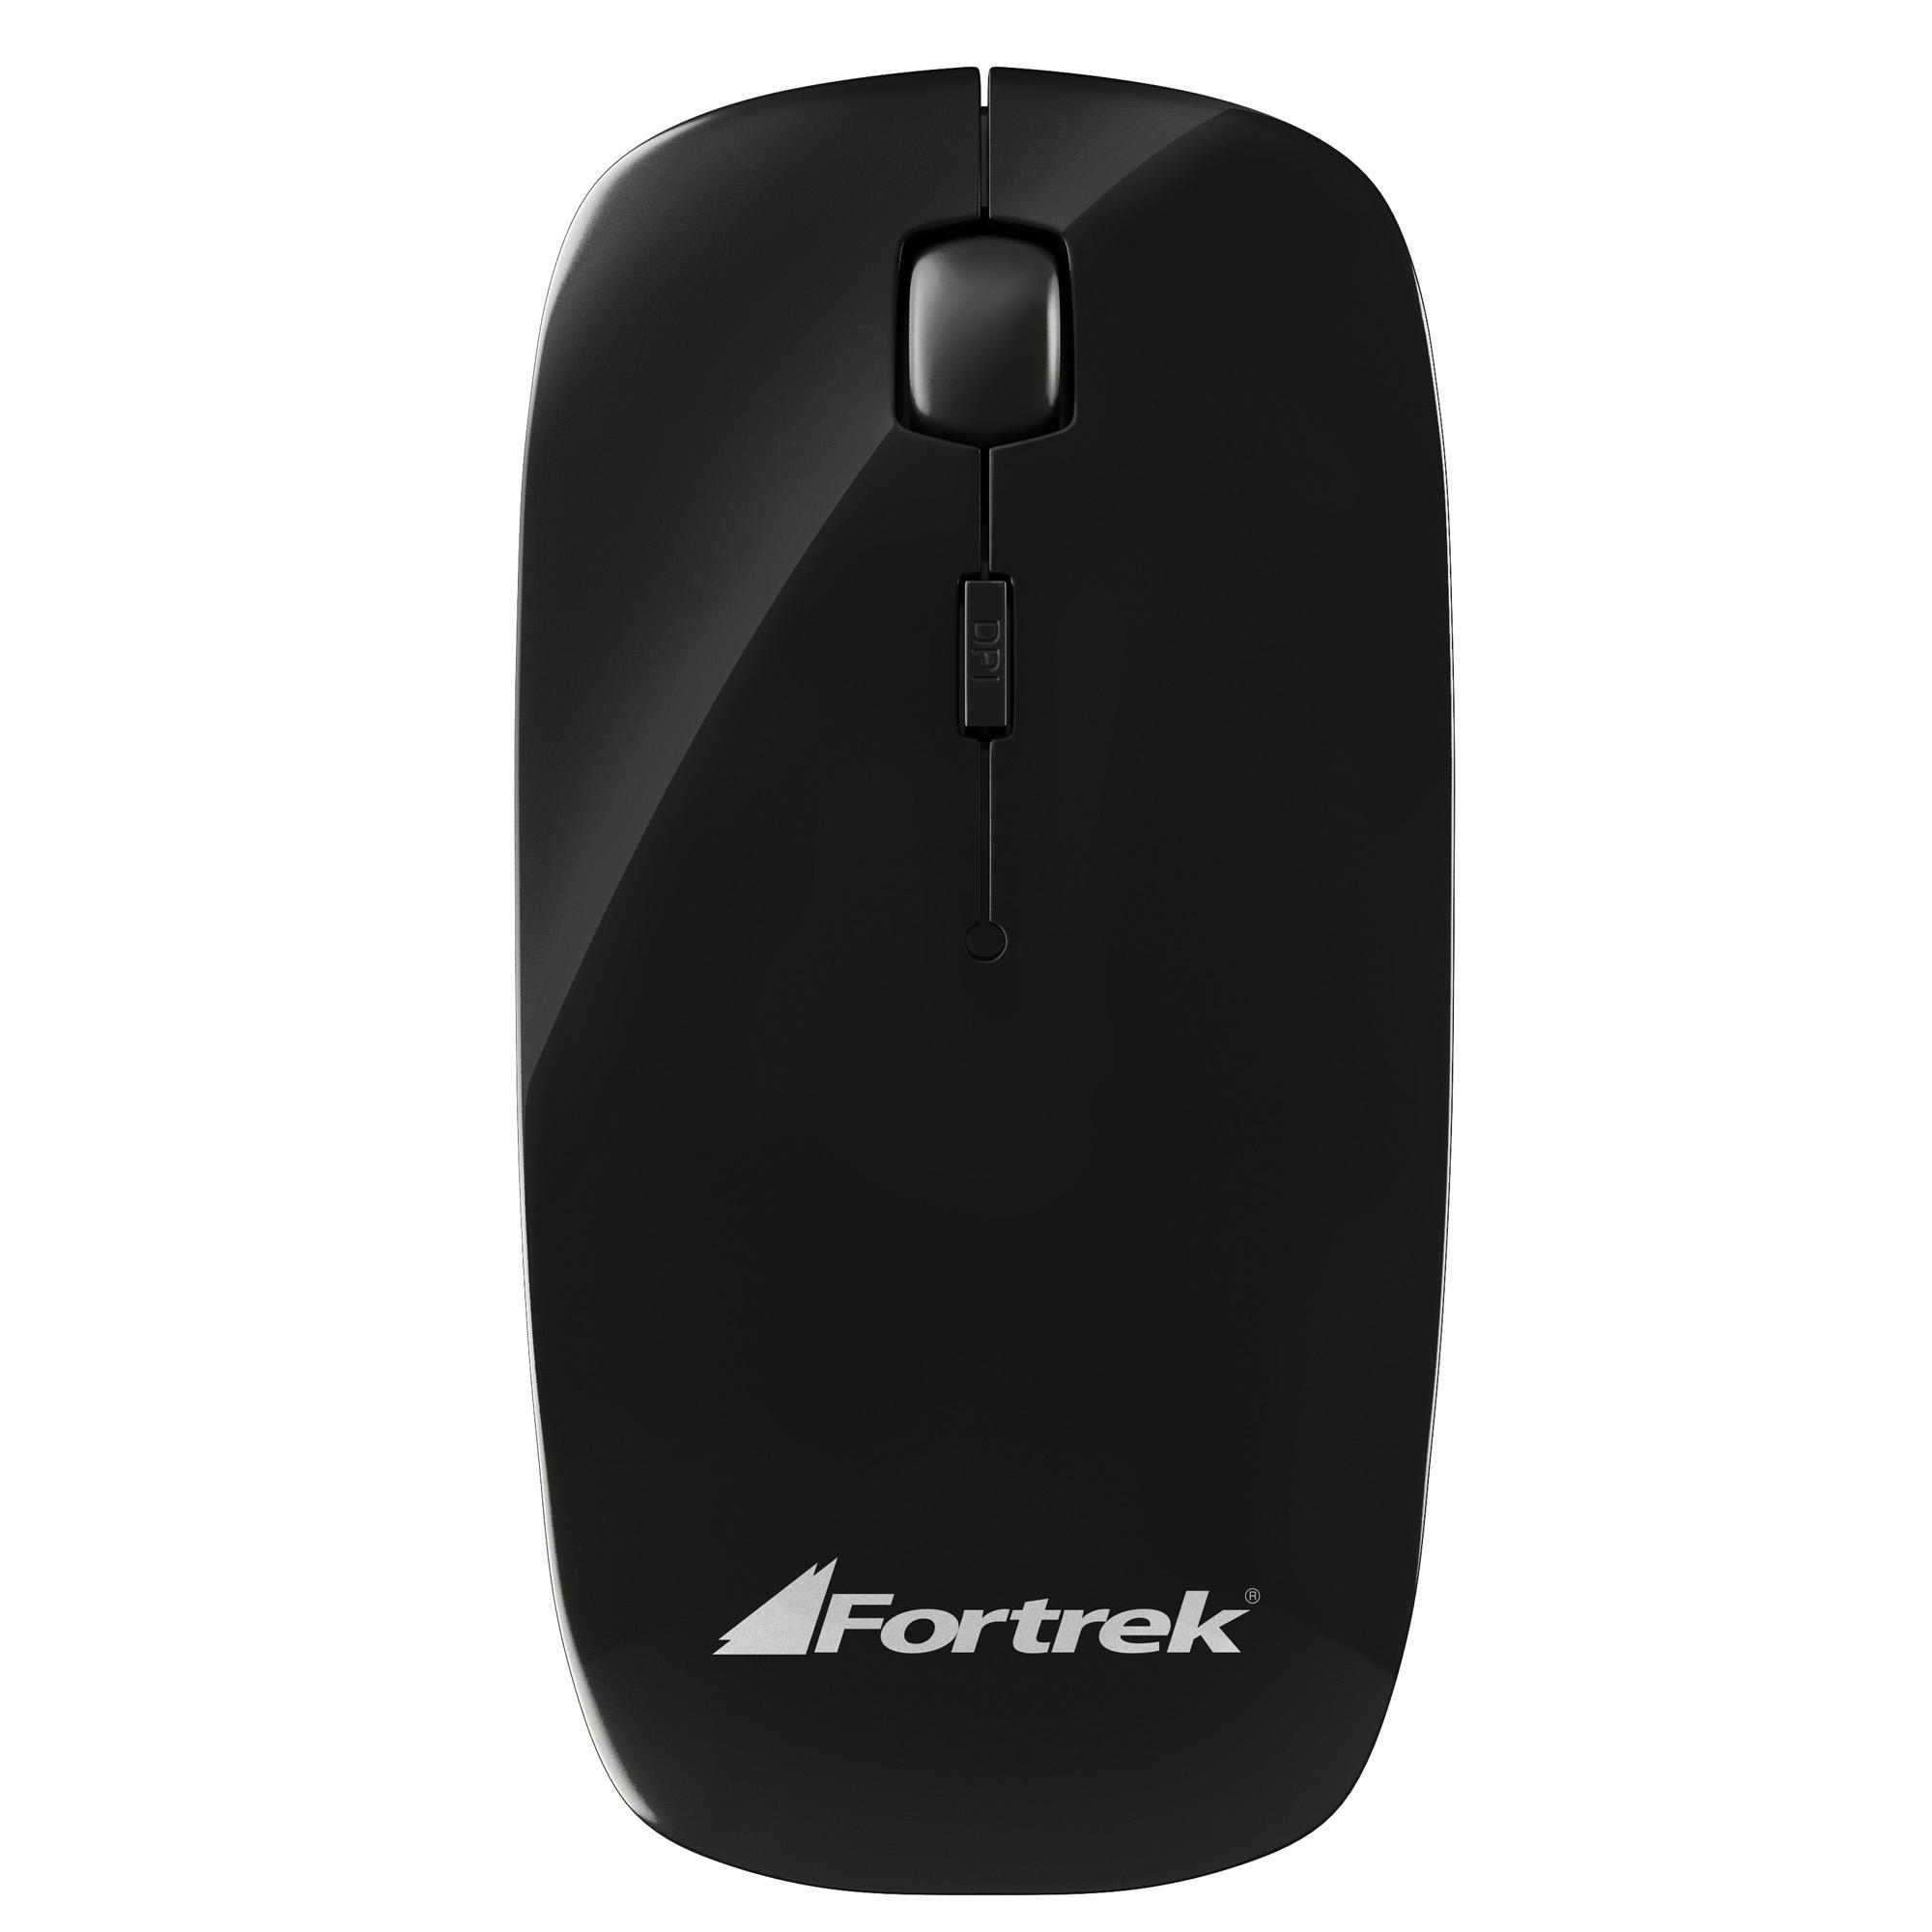 combo-teclado-mouse-wireless-wcf-102-fortrek